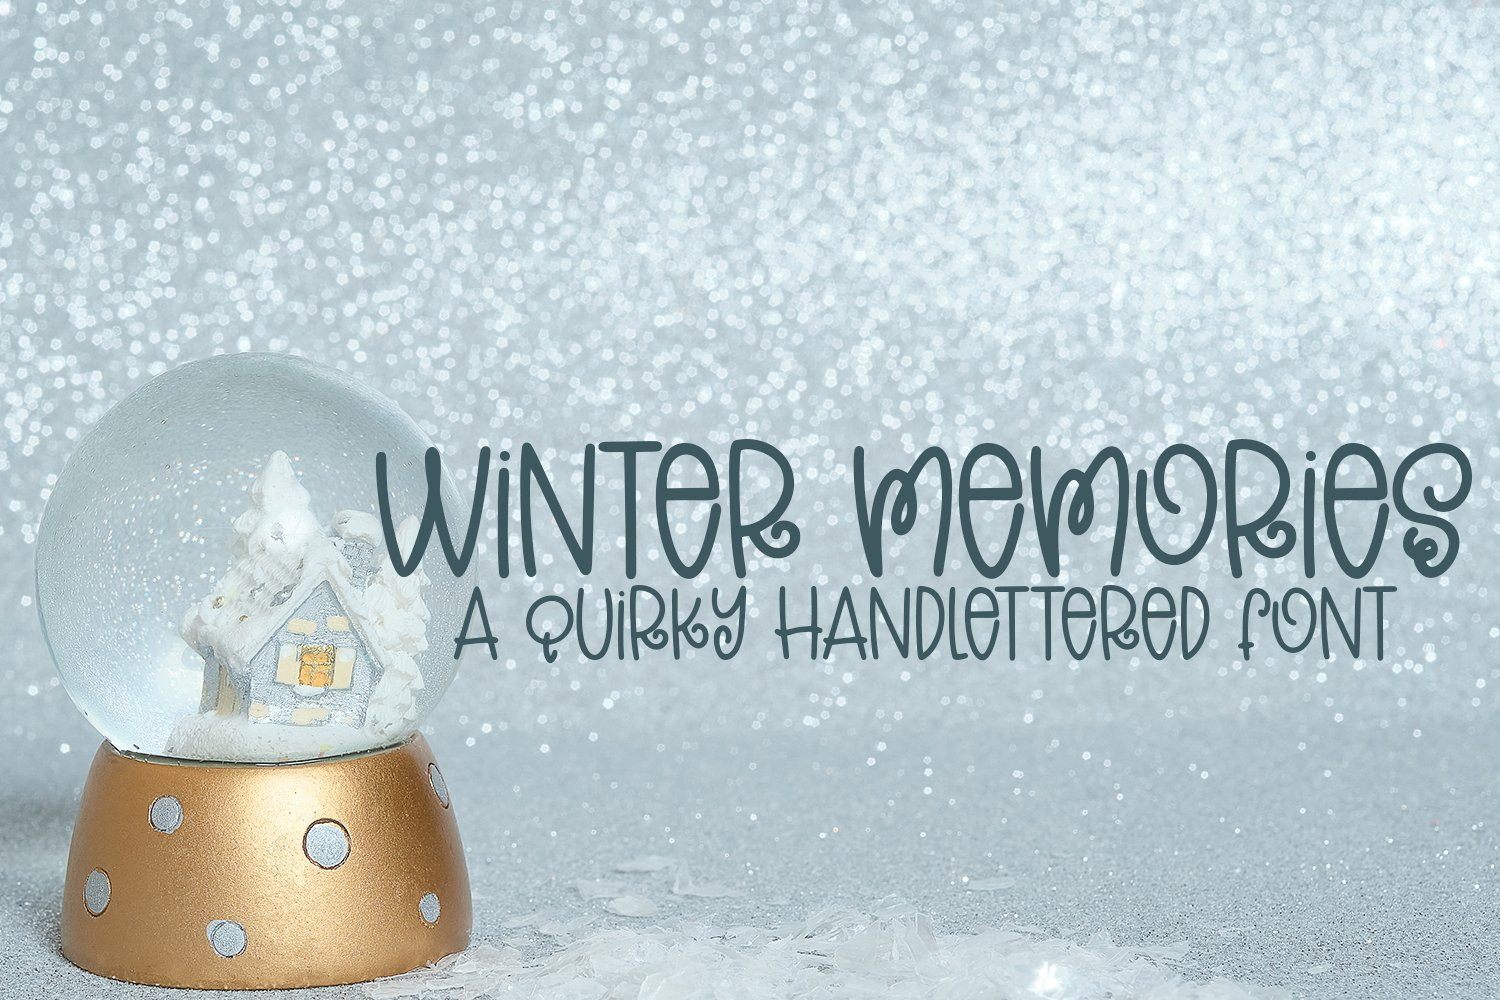 Winter Memories - A Quirky Hand-Lettered Font example image 1